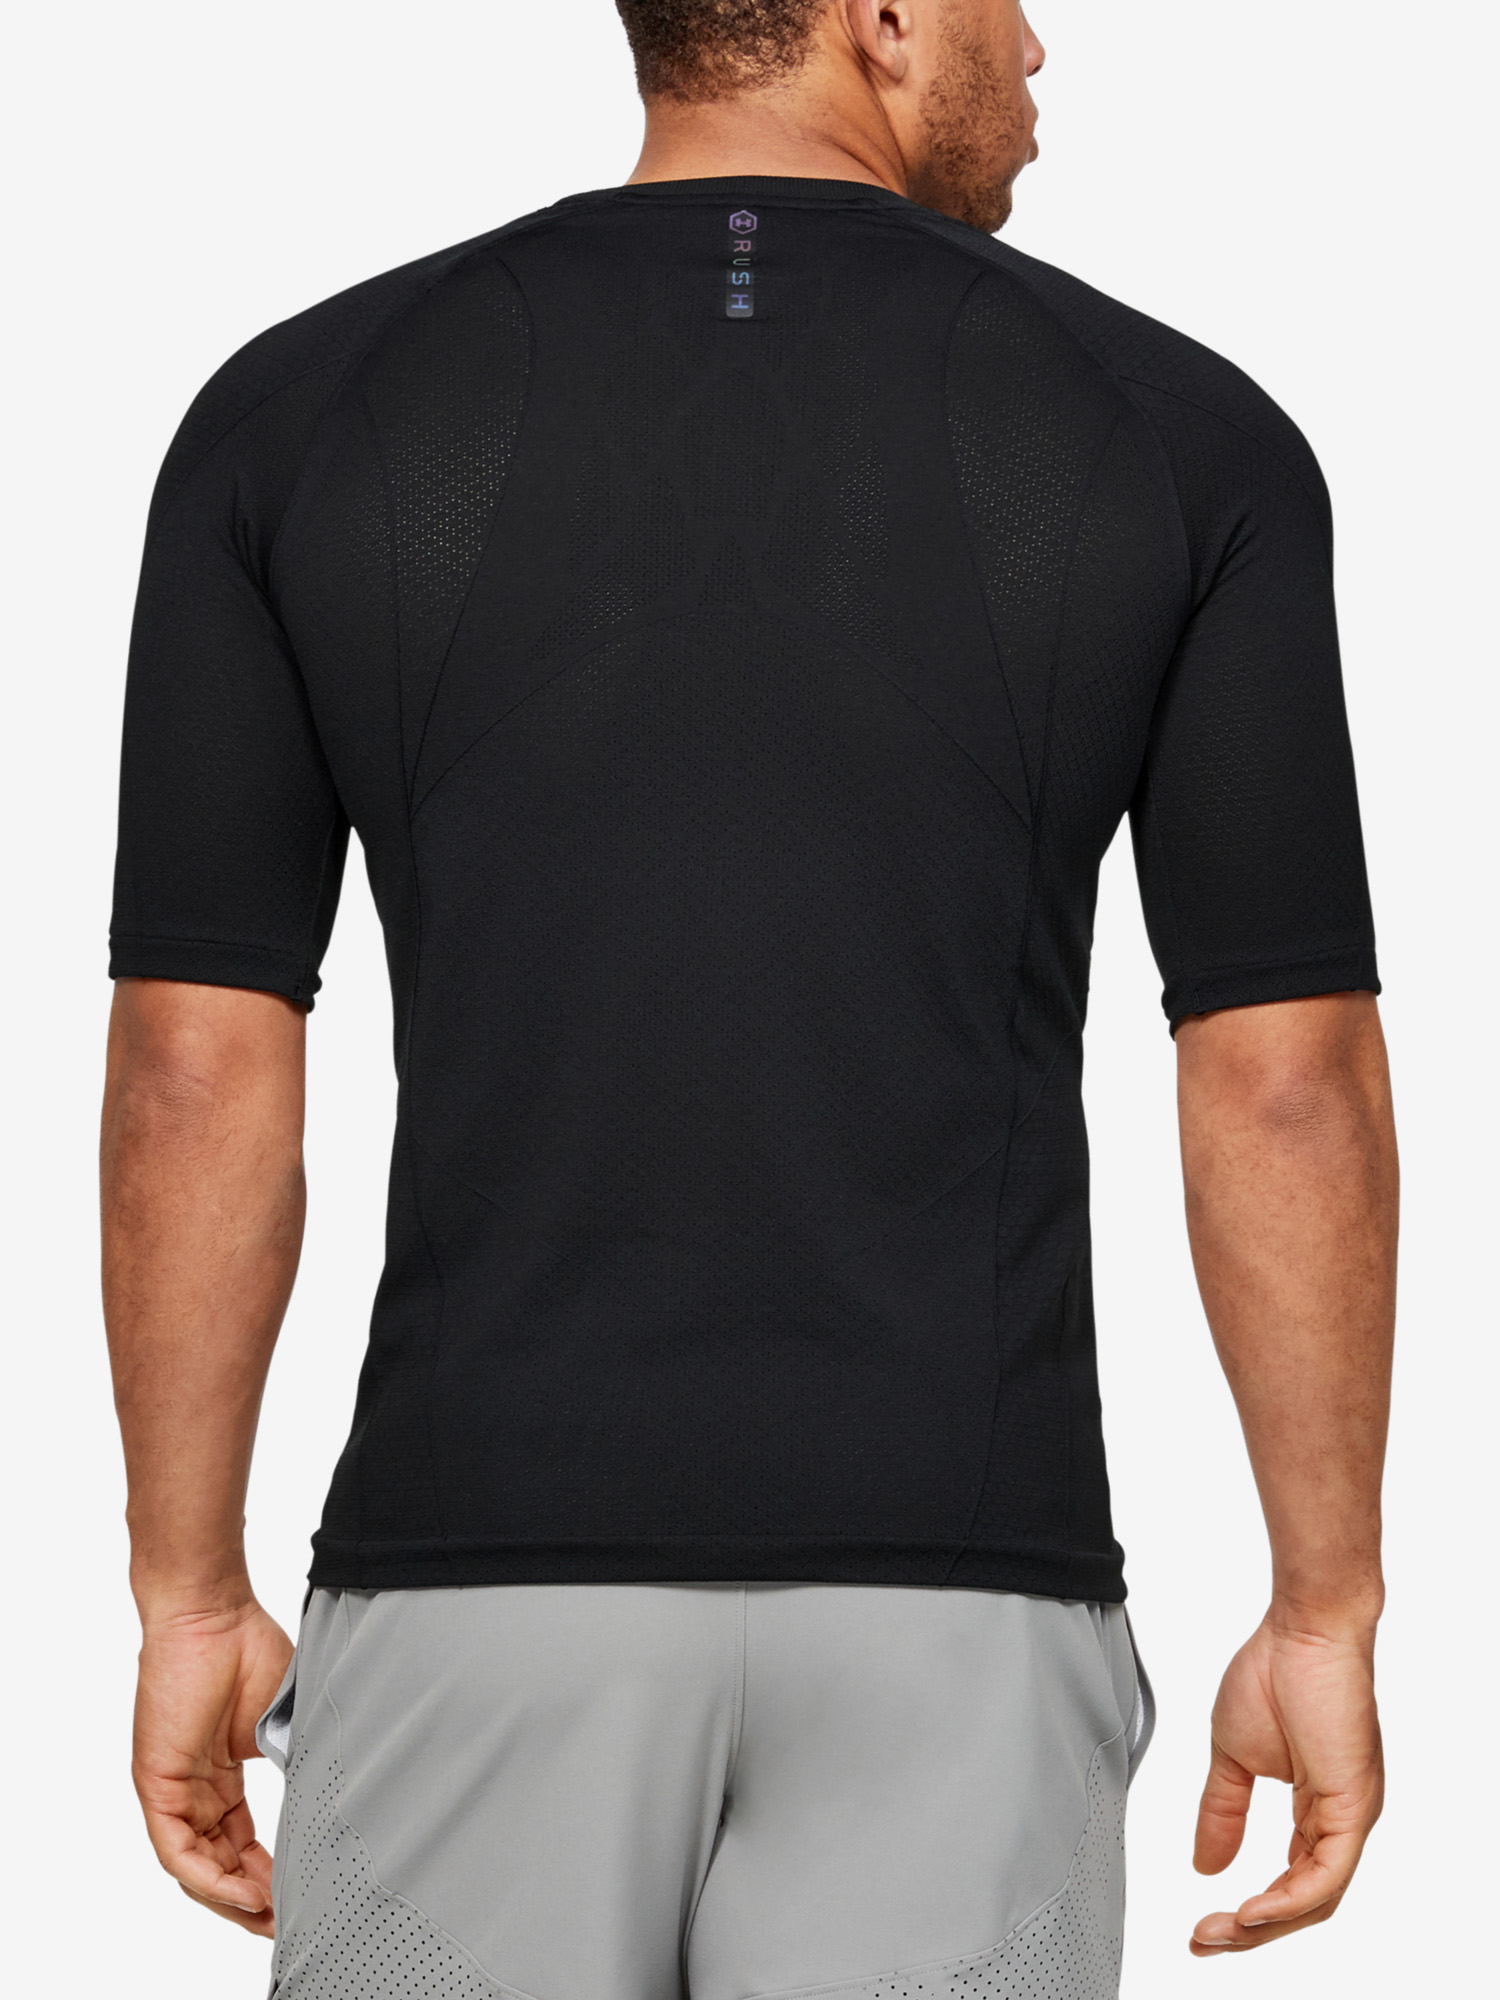 Rush HG Seamless Compression SS-BLK